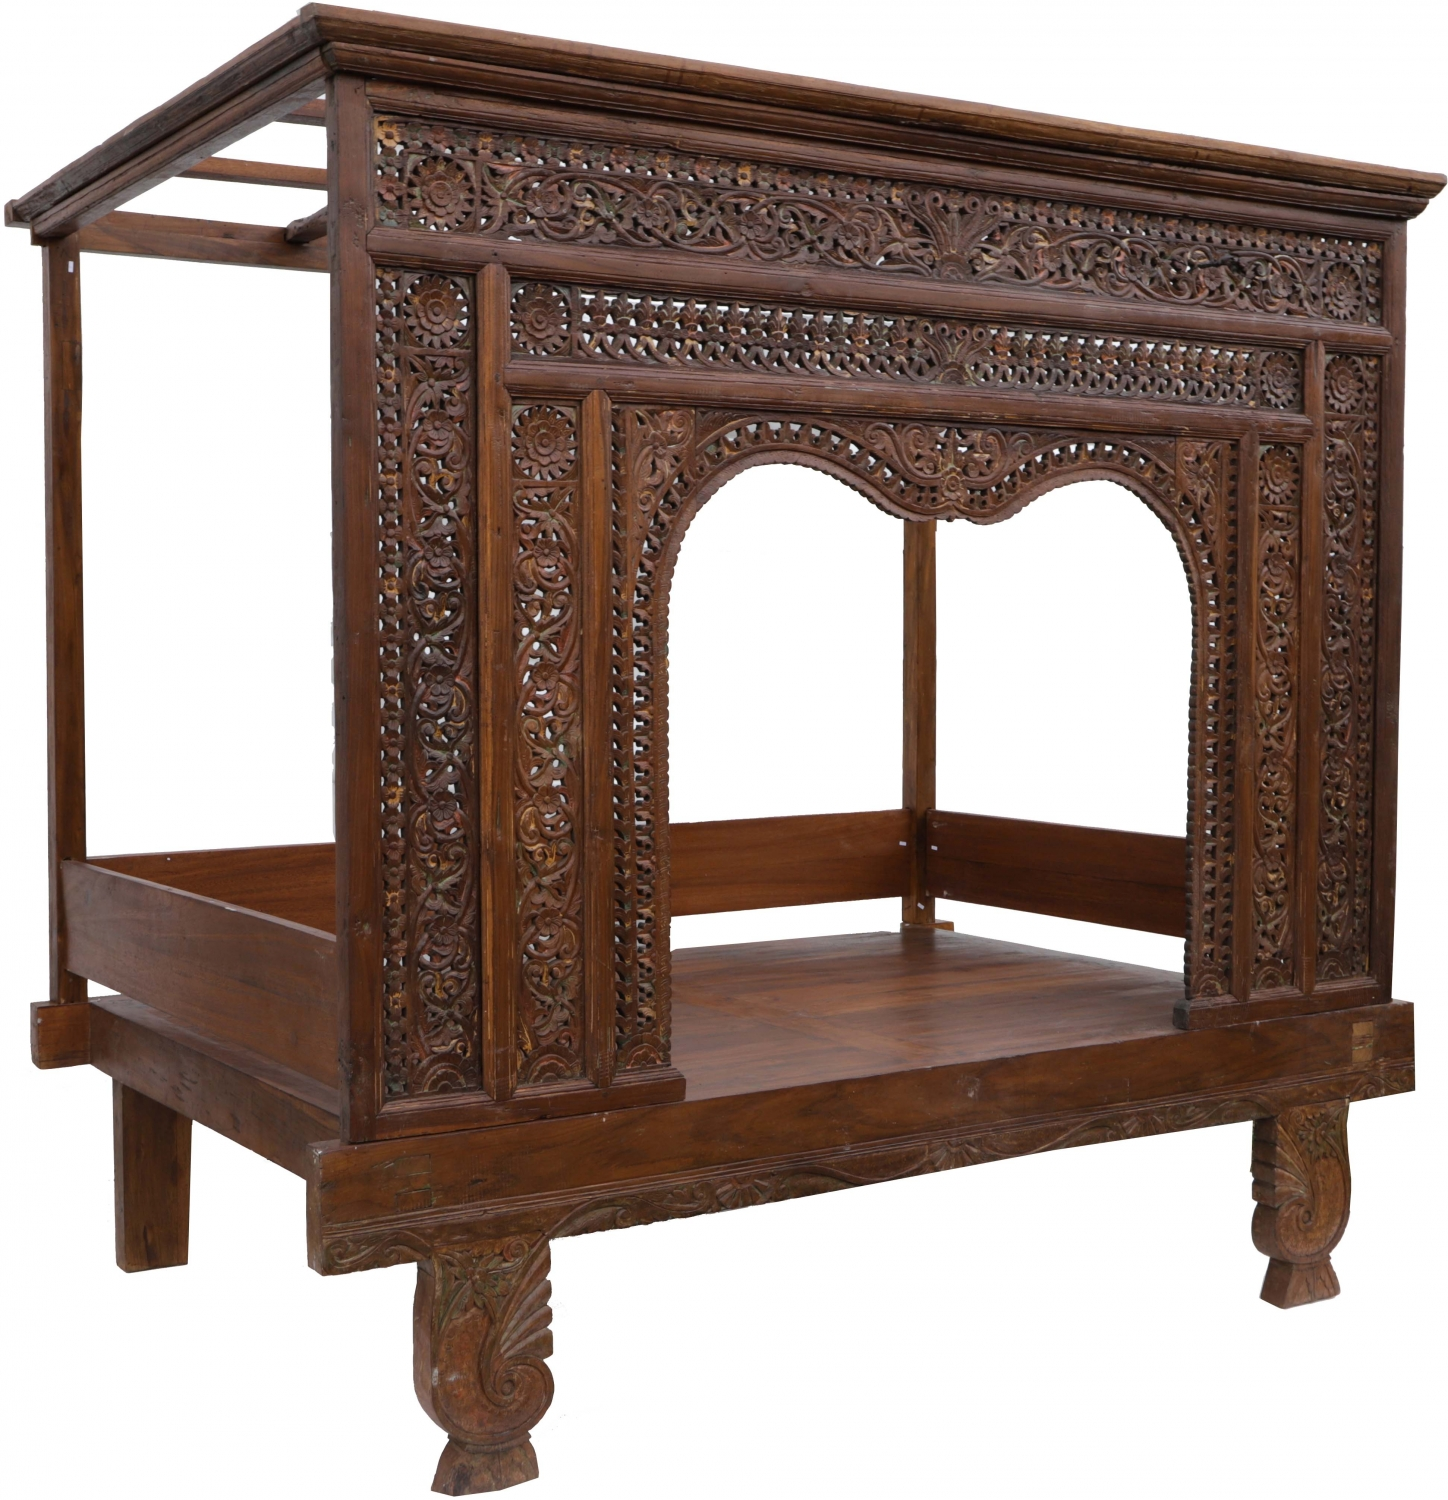 - Historic Four-poster Bed, Teak Daybed - Model 4 - 210x228x150 Cm